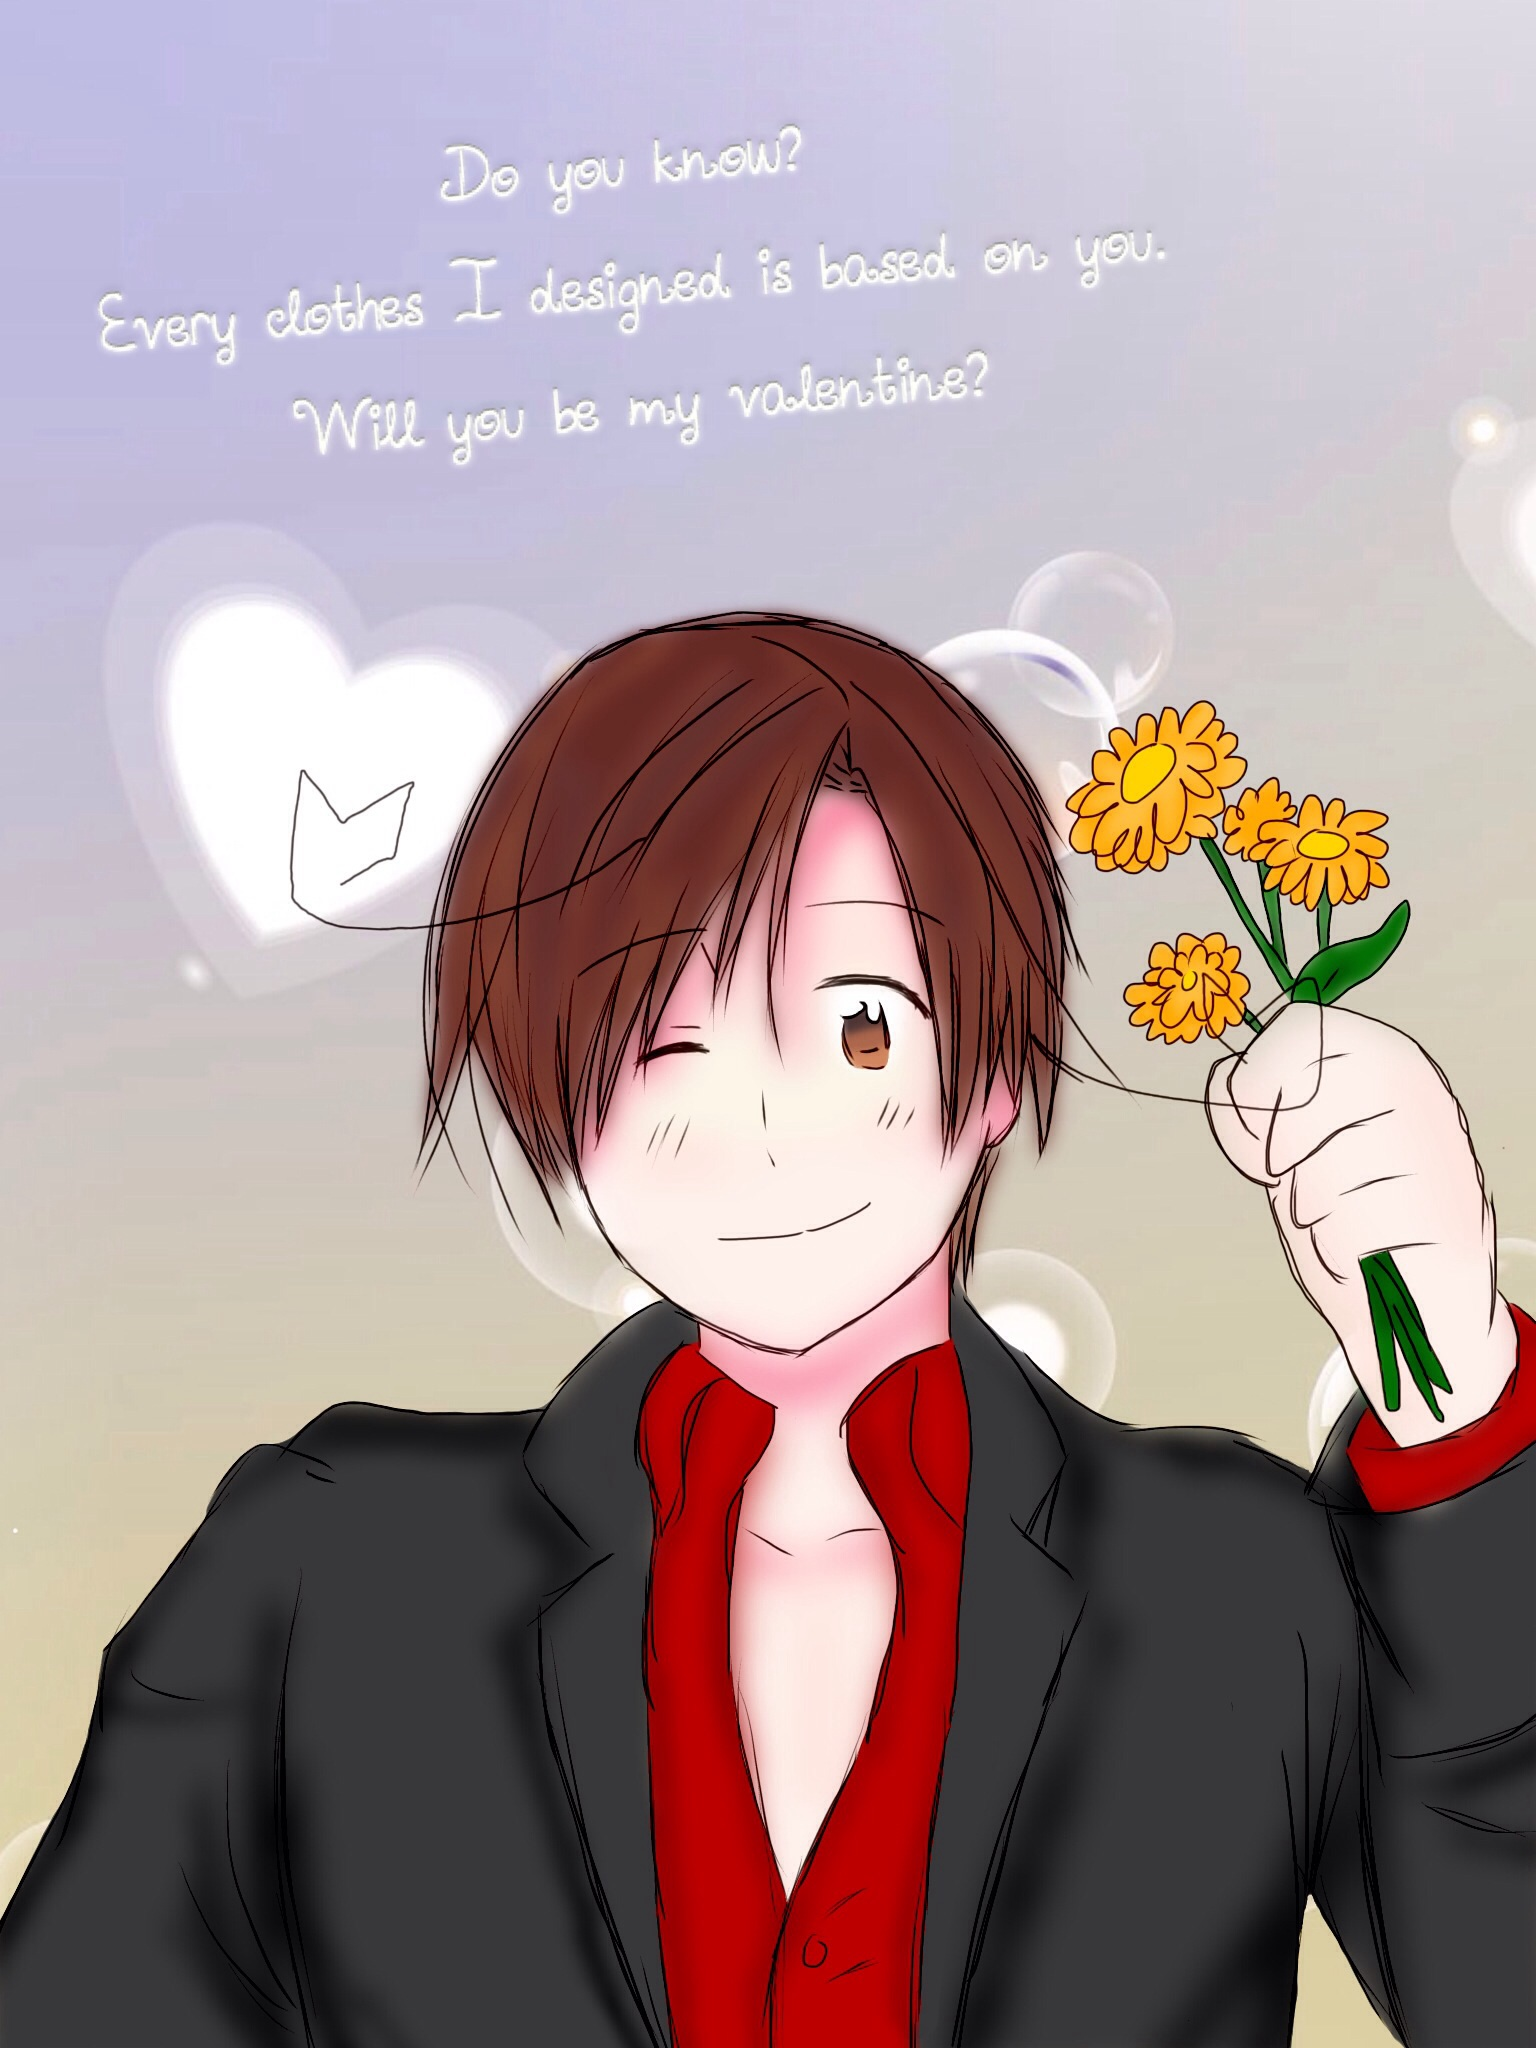 Will you be my valentine? (Milan's style) by Akiraka-chan